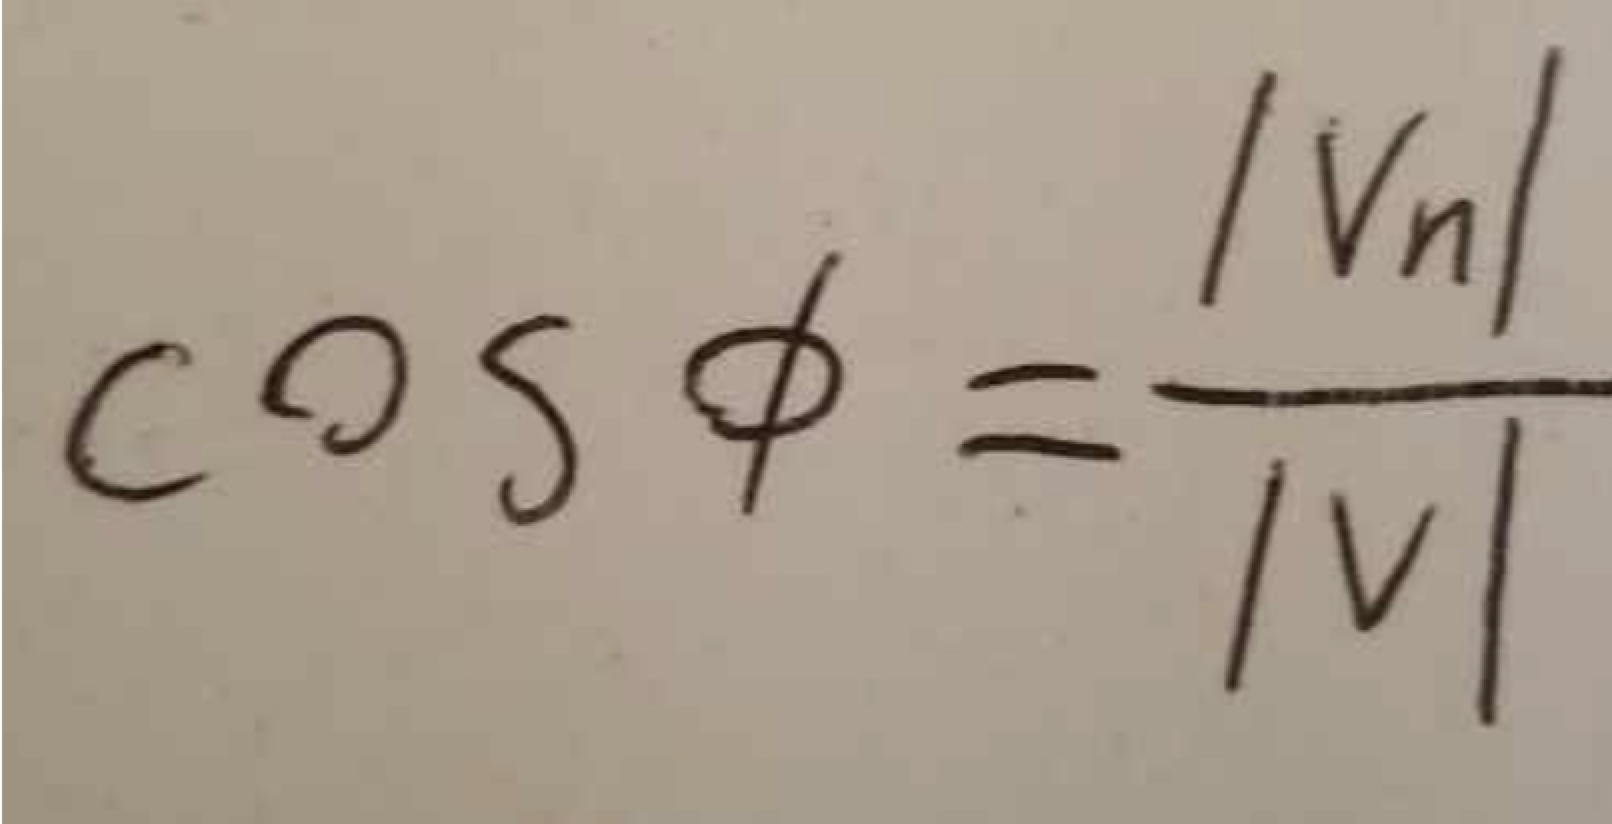 Another handwritten equation captured via mobile camera from a notebook